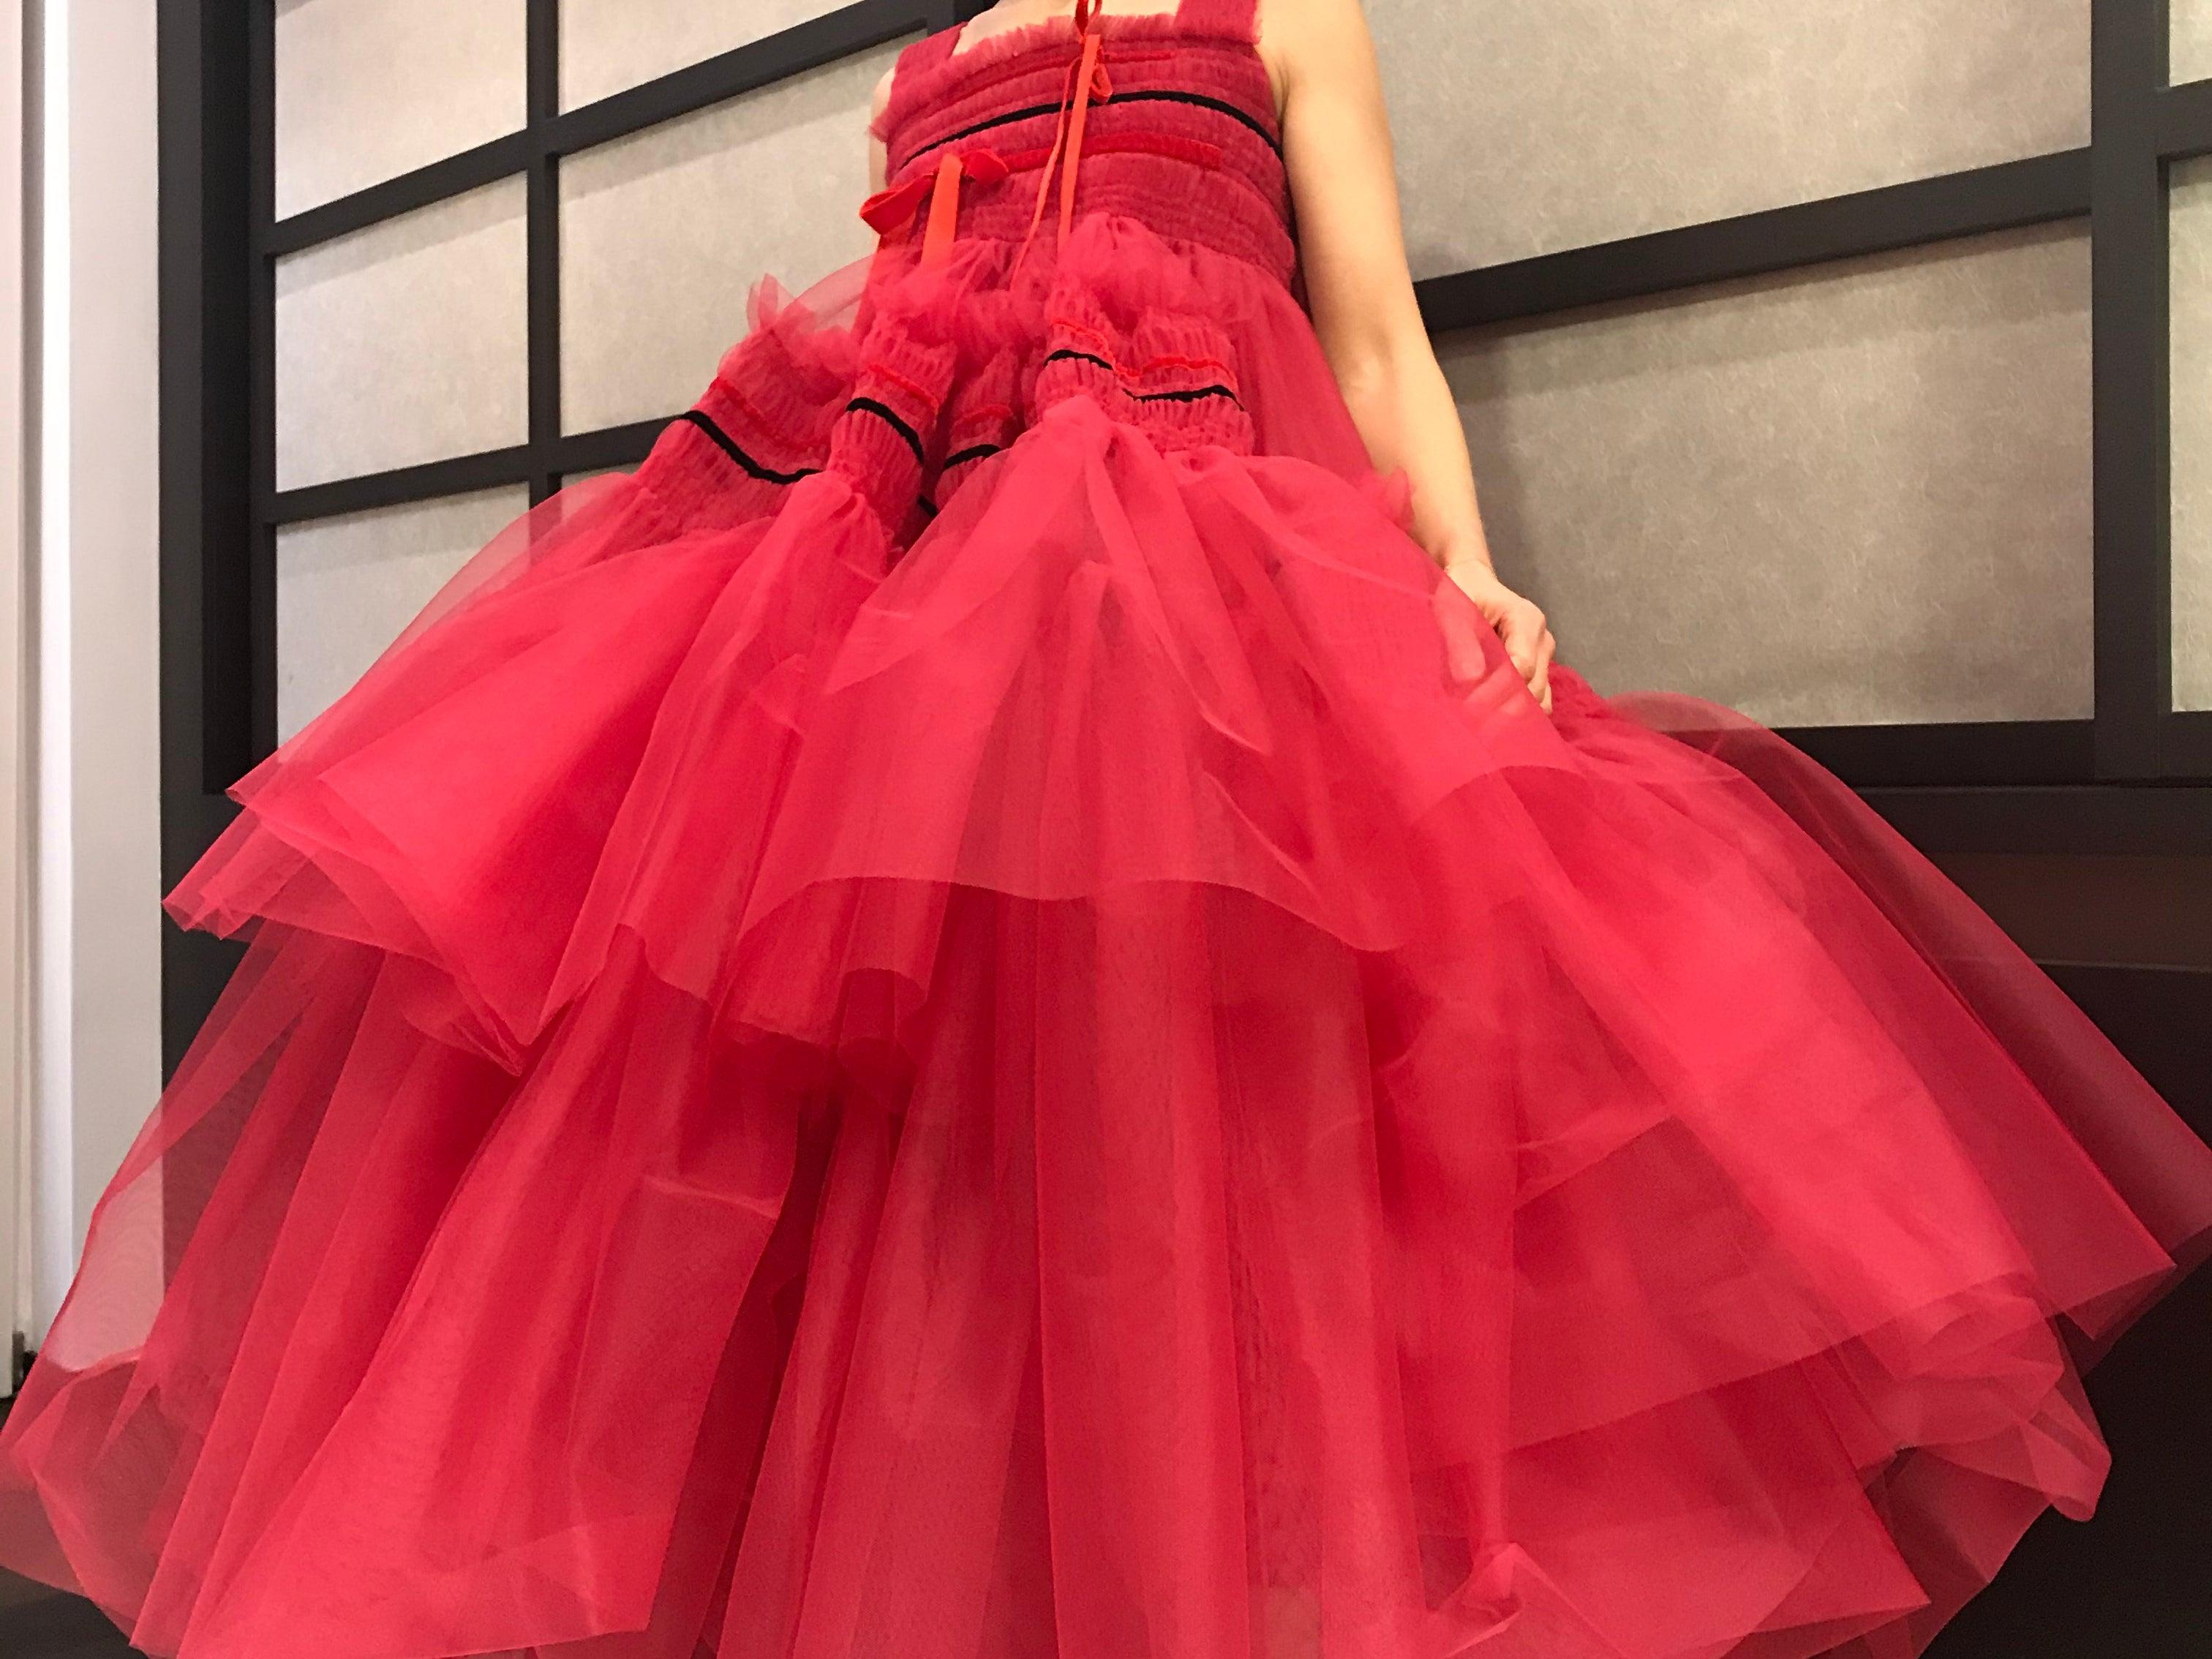 "<h2>Rosamund Pike in Molly Goddard</h2><br>Don't you just want to go out and dance in this tulle dress by Molly Goddard?<span class=""copyright"">Photo Credit: Rosamund Pike.</span>"